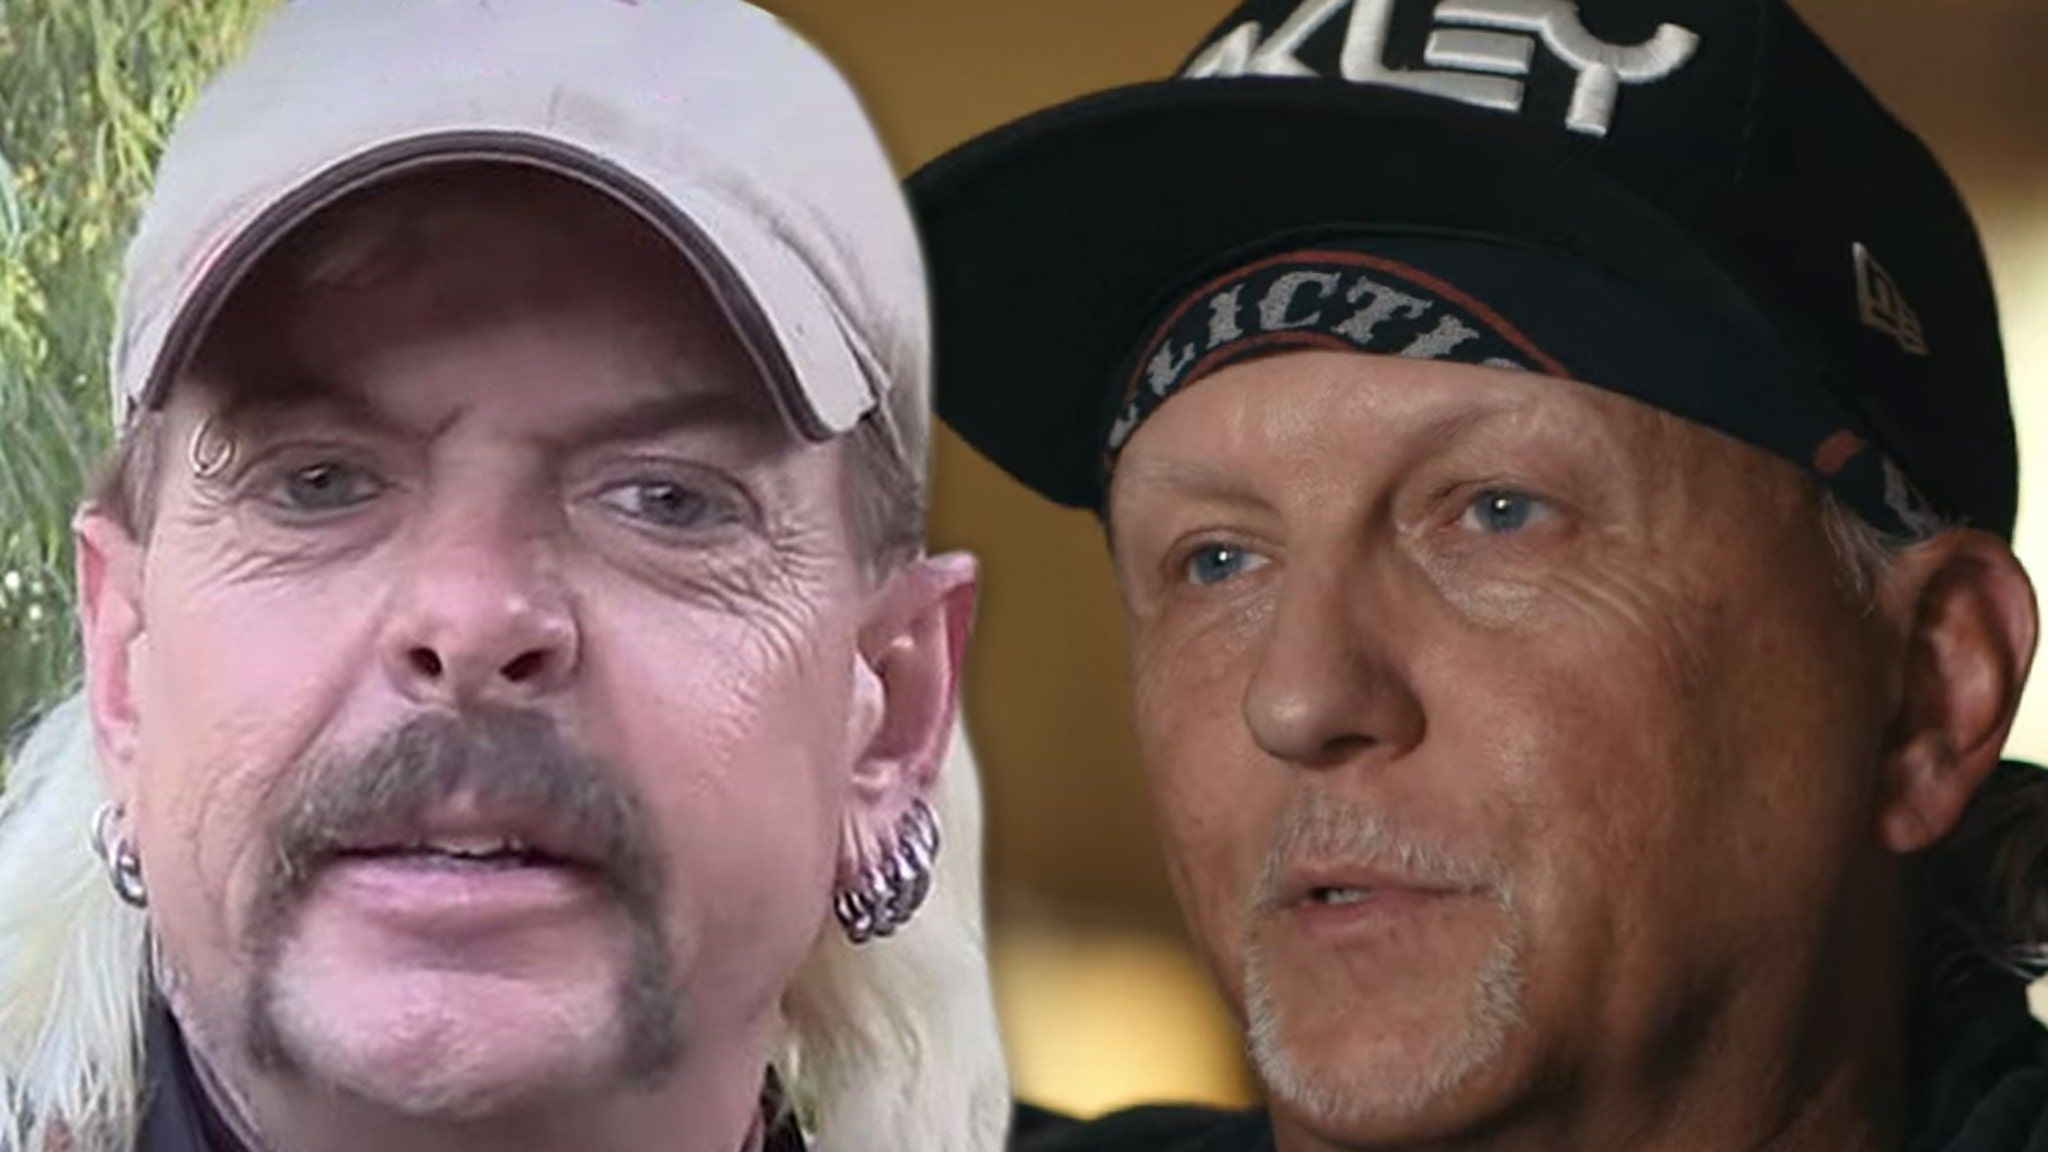 Joe Exotic Beefing with Jeff Lowe Over Fashion Line